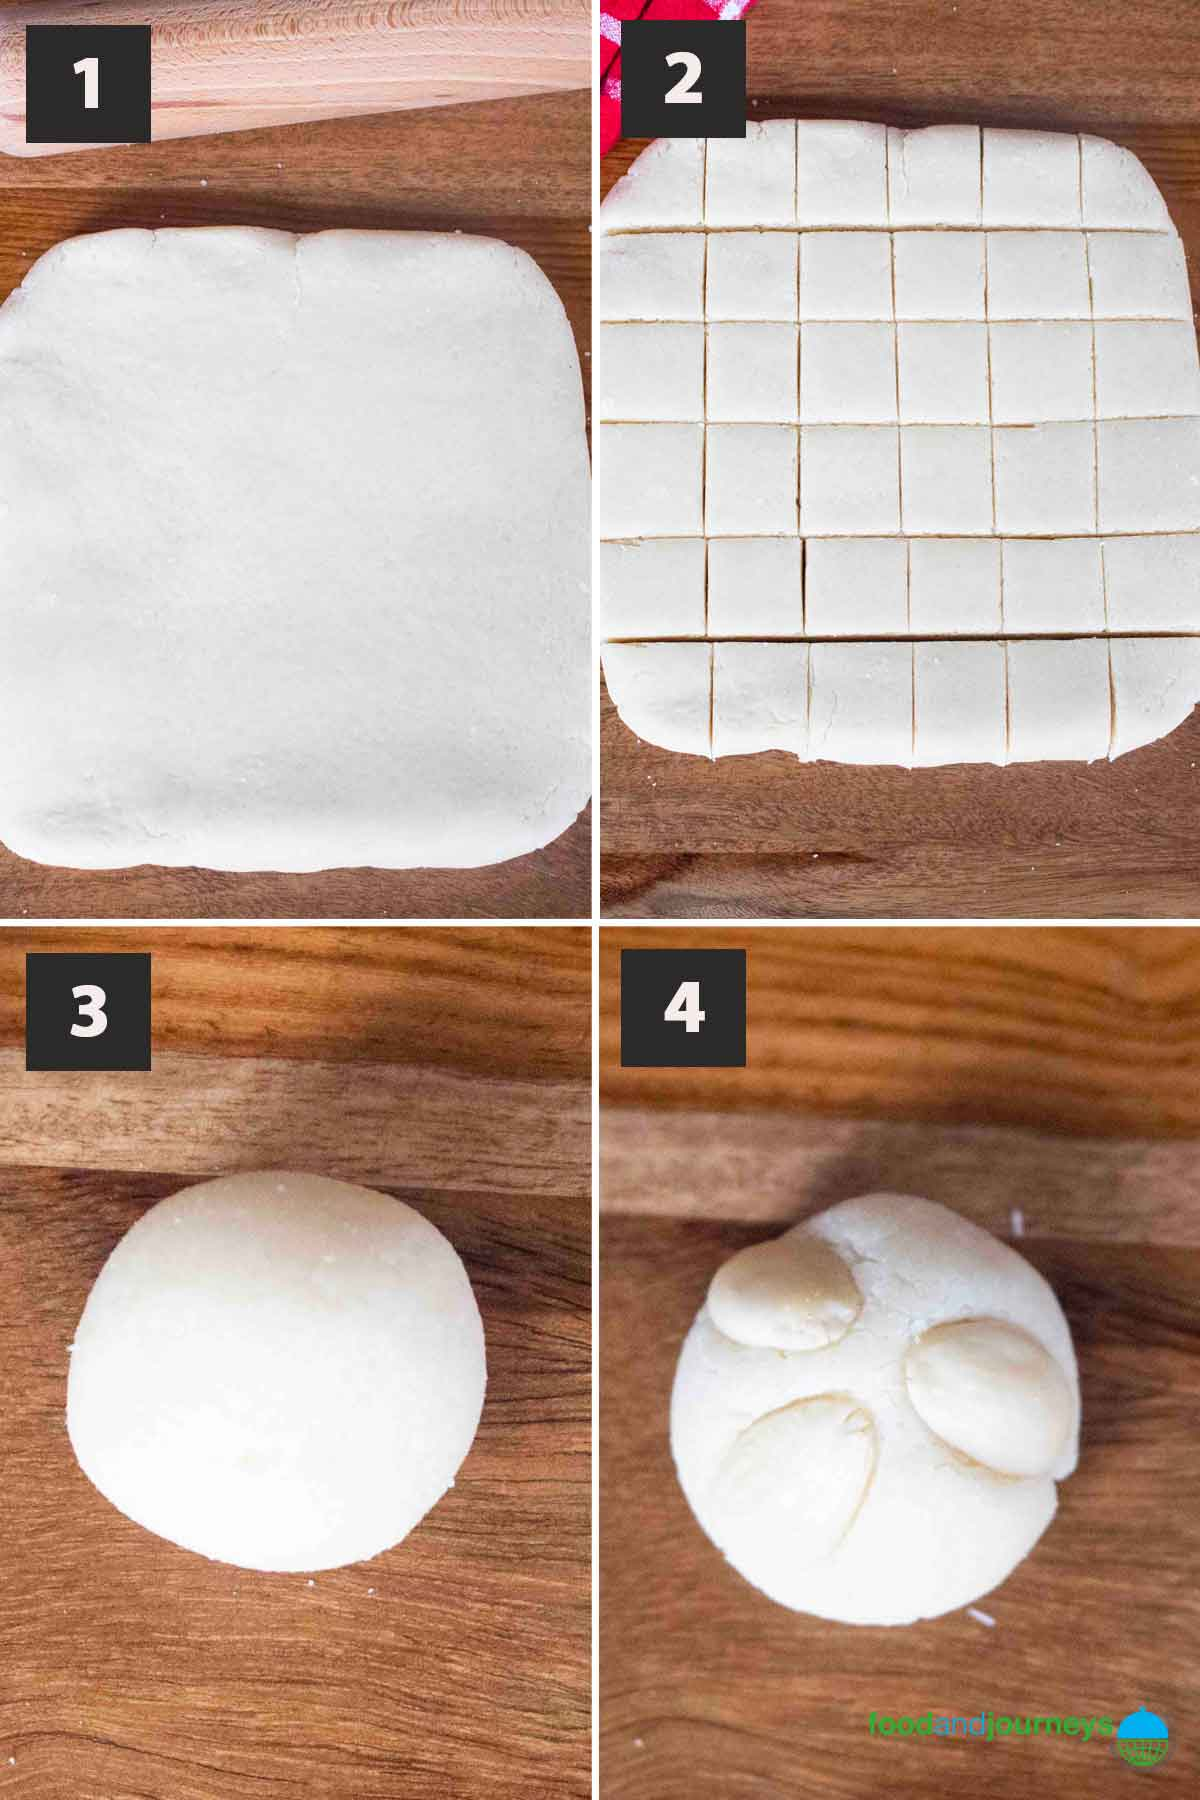 Latest (Aug 2021) first part of a collage of images showing the step by step process on how to make baked marzipan desserts at home.